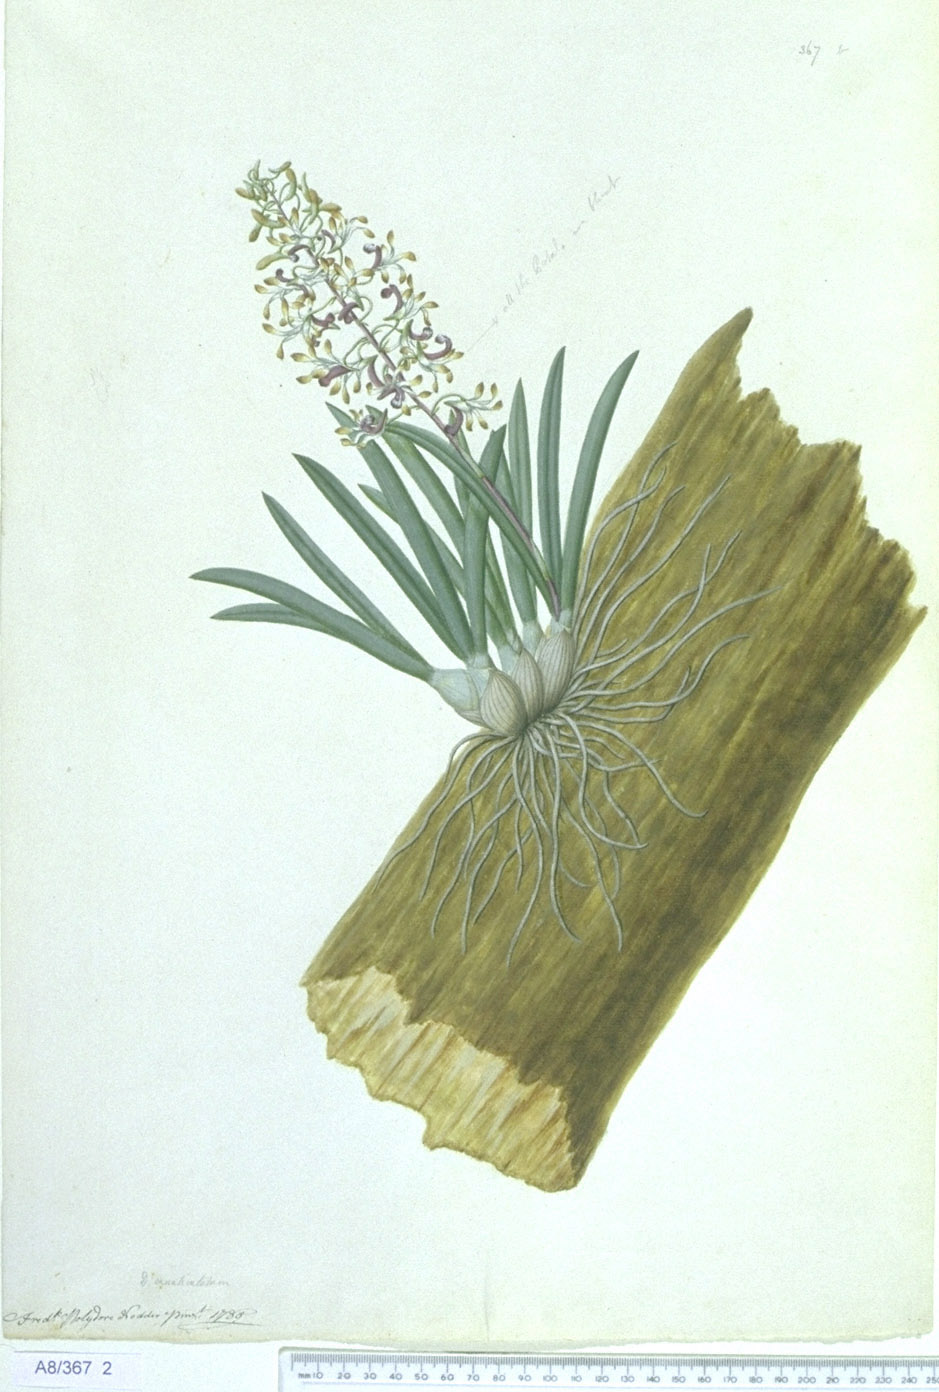 Dendrobium Canaliculatum - approx. actual size - this image digitally watermarked and copyright NHM